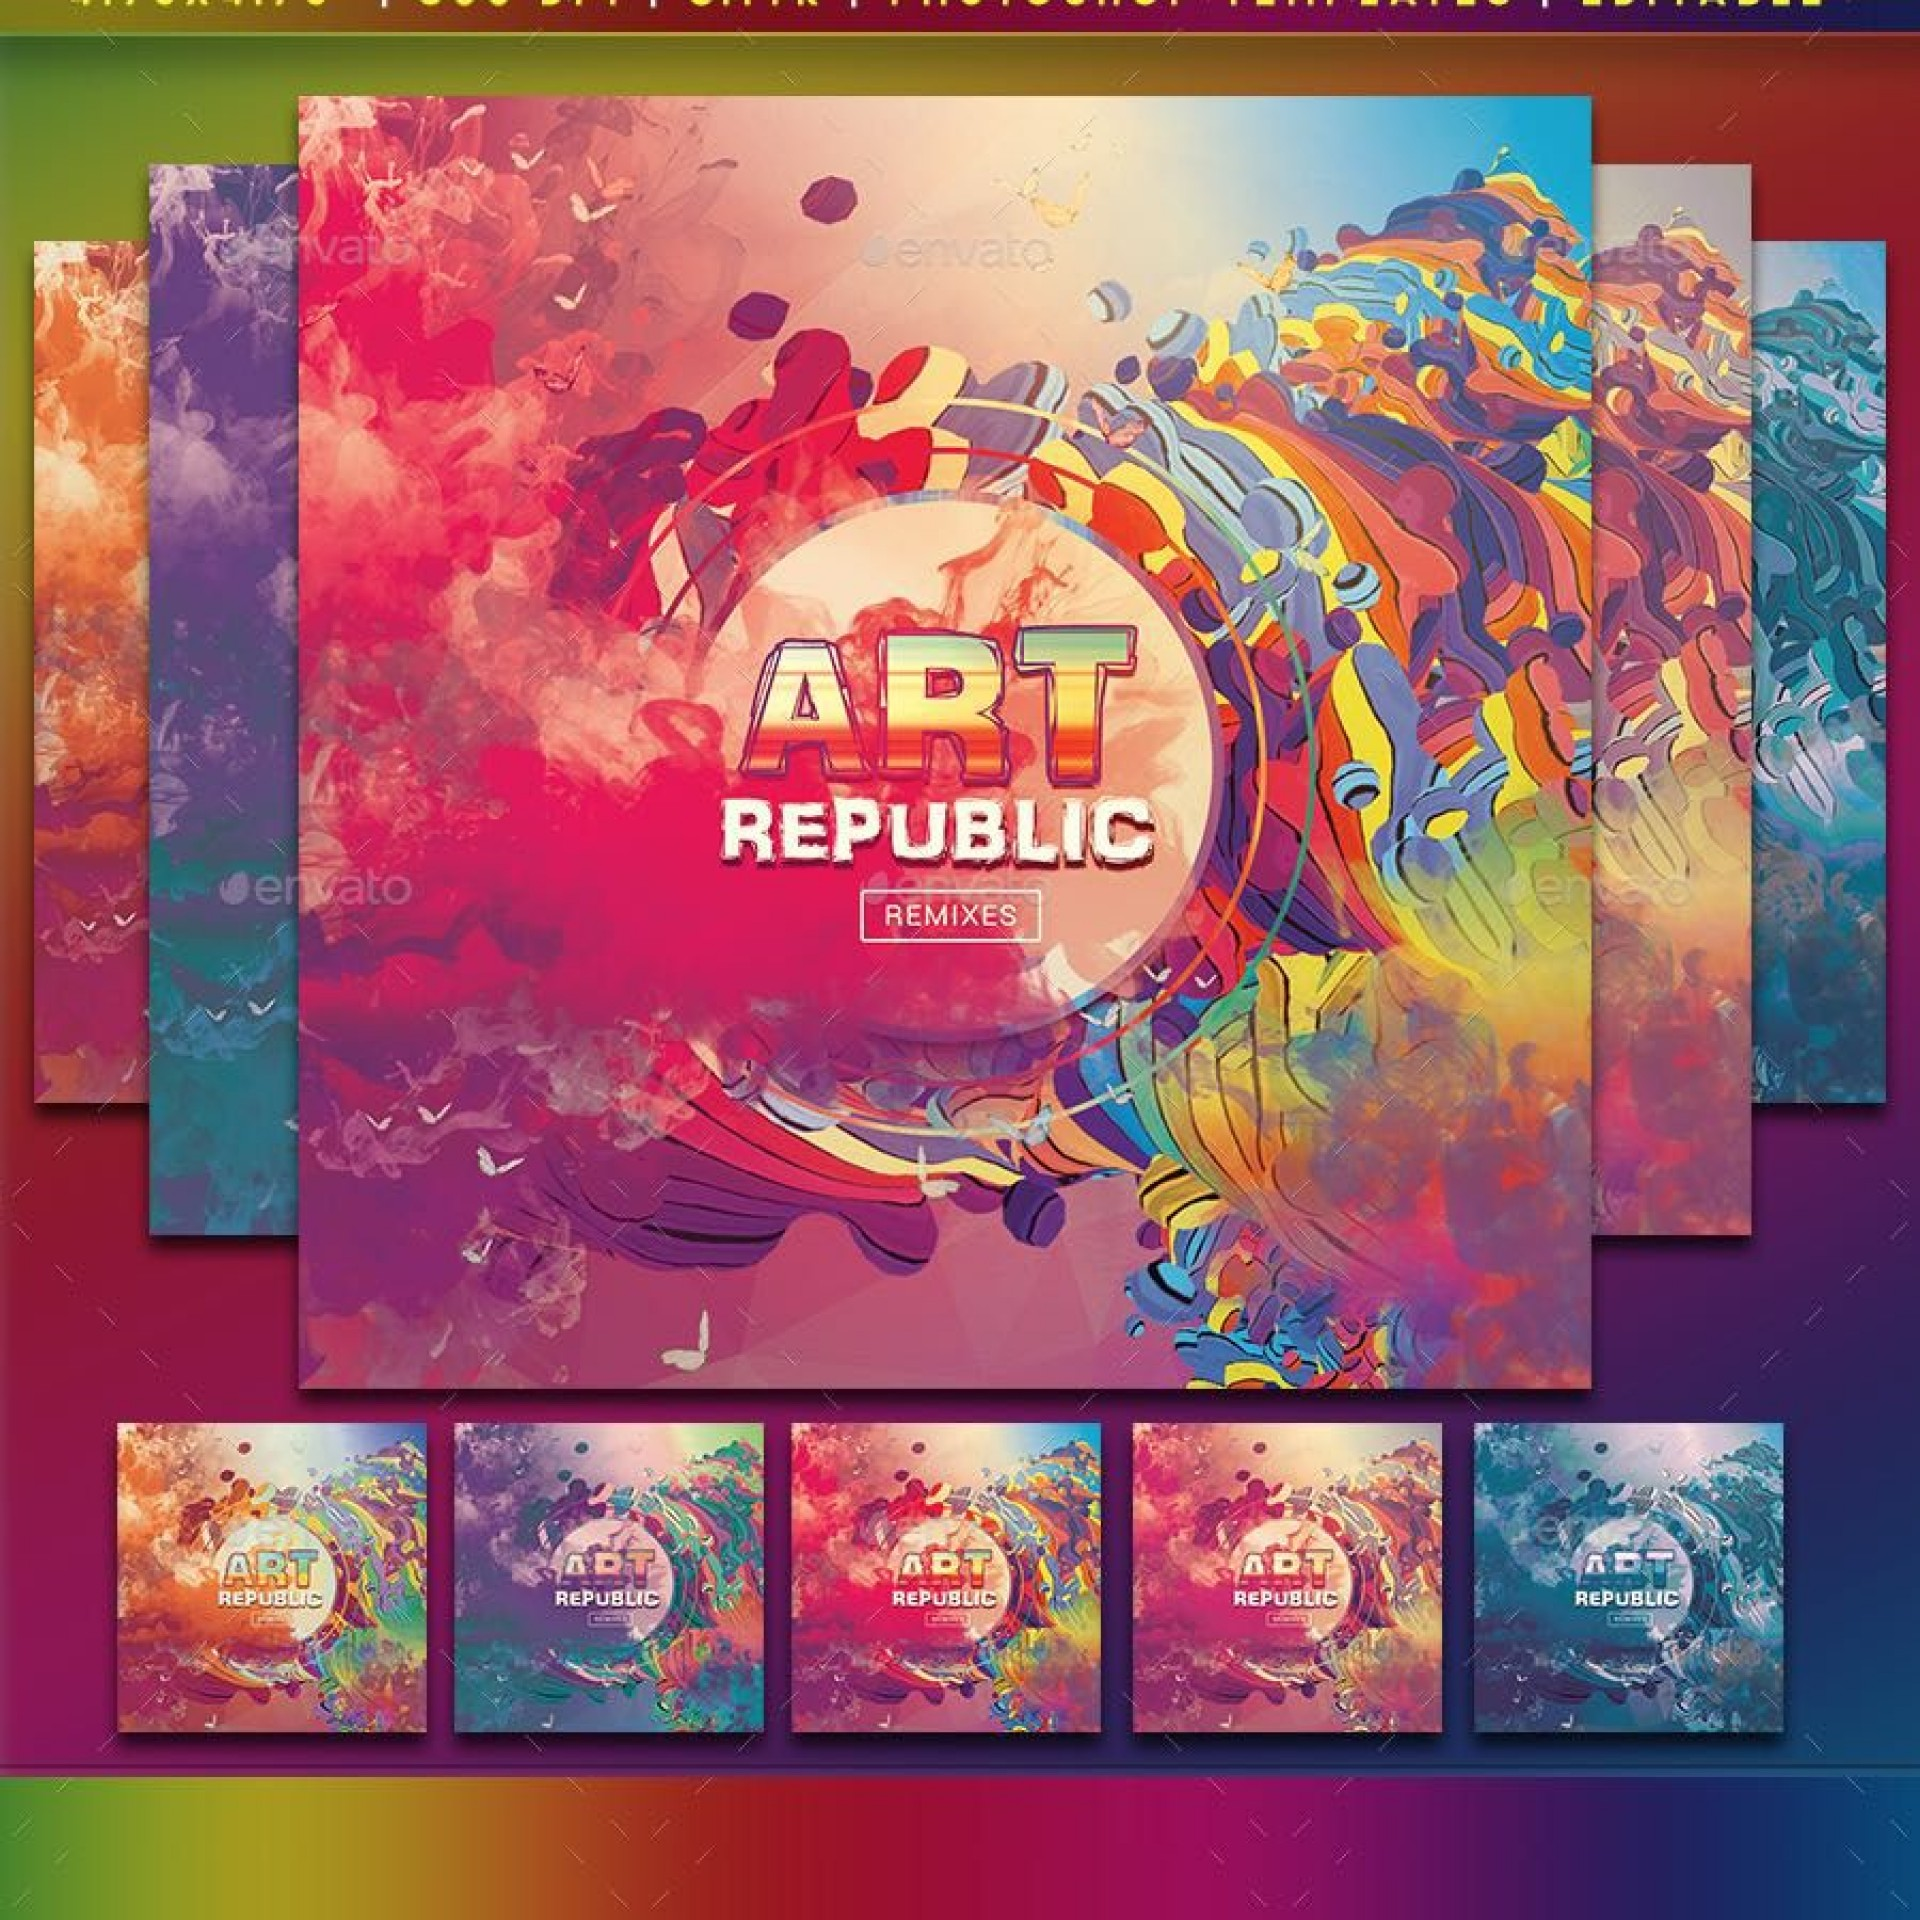 001 Surprising Cd Cover Design Template Photoshop  Label Psd Free1920